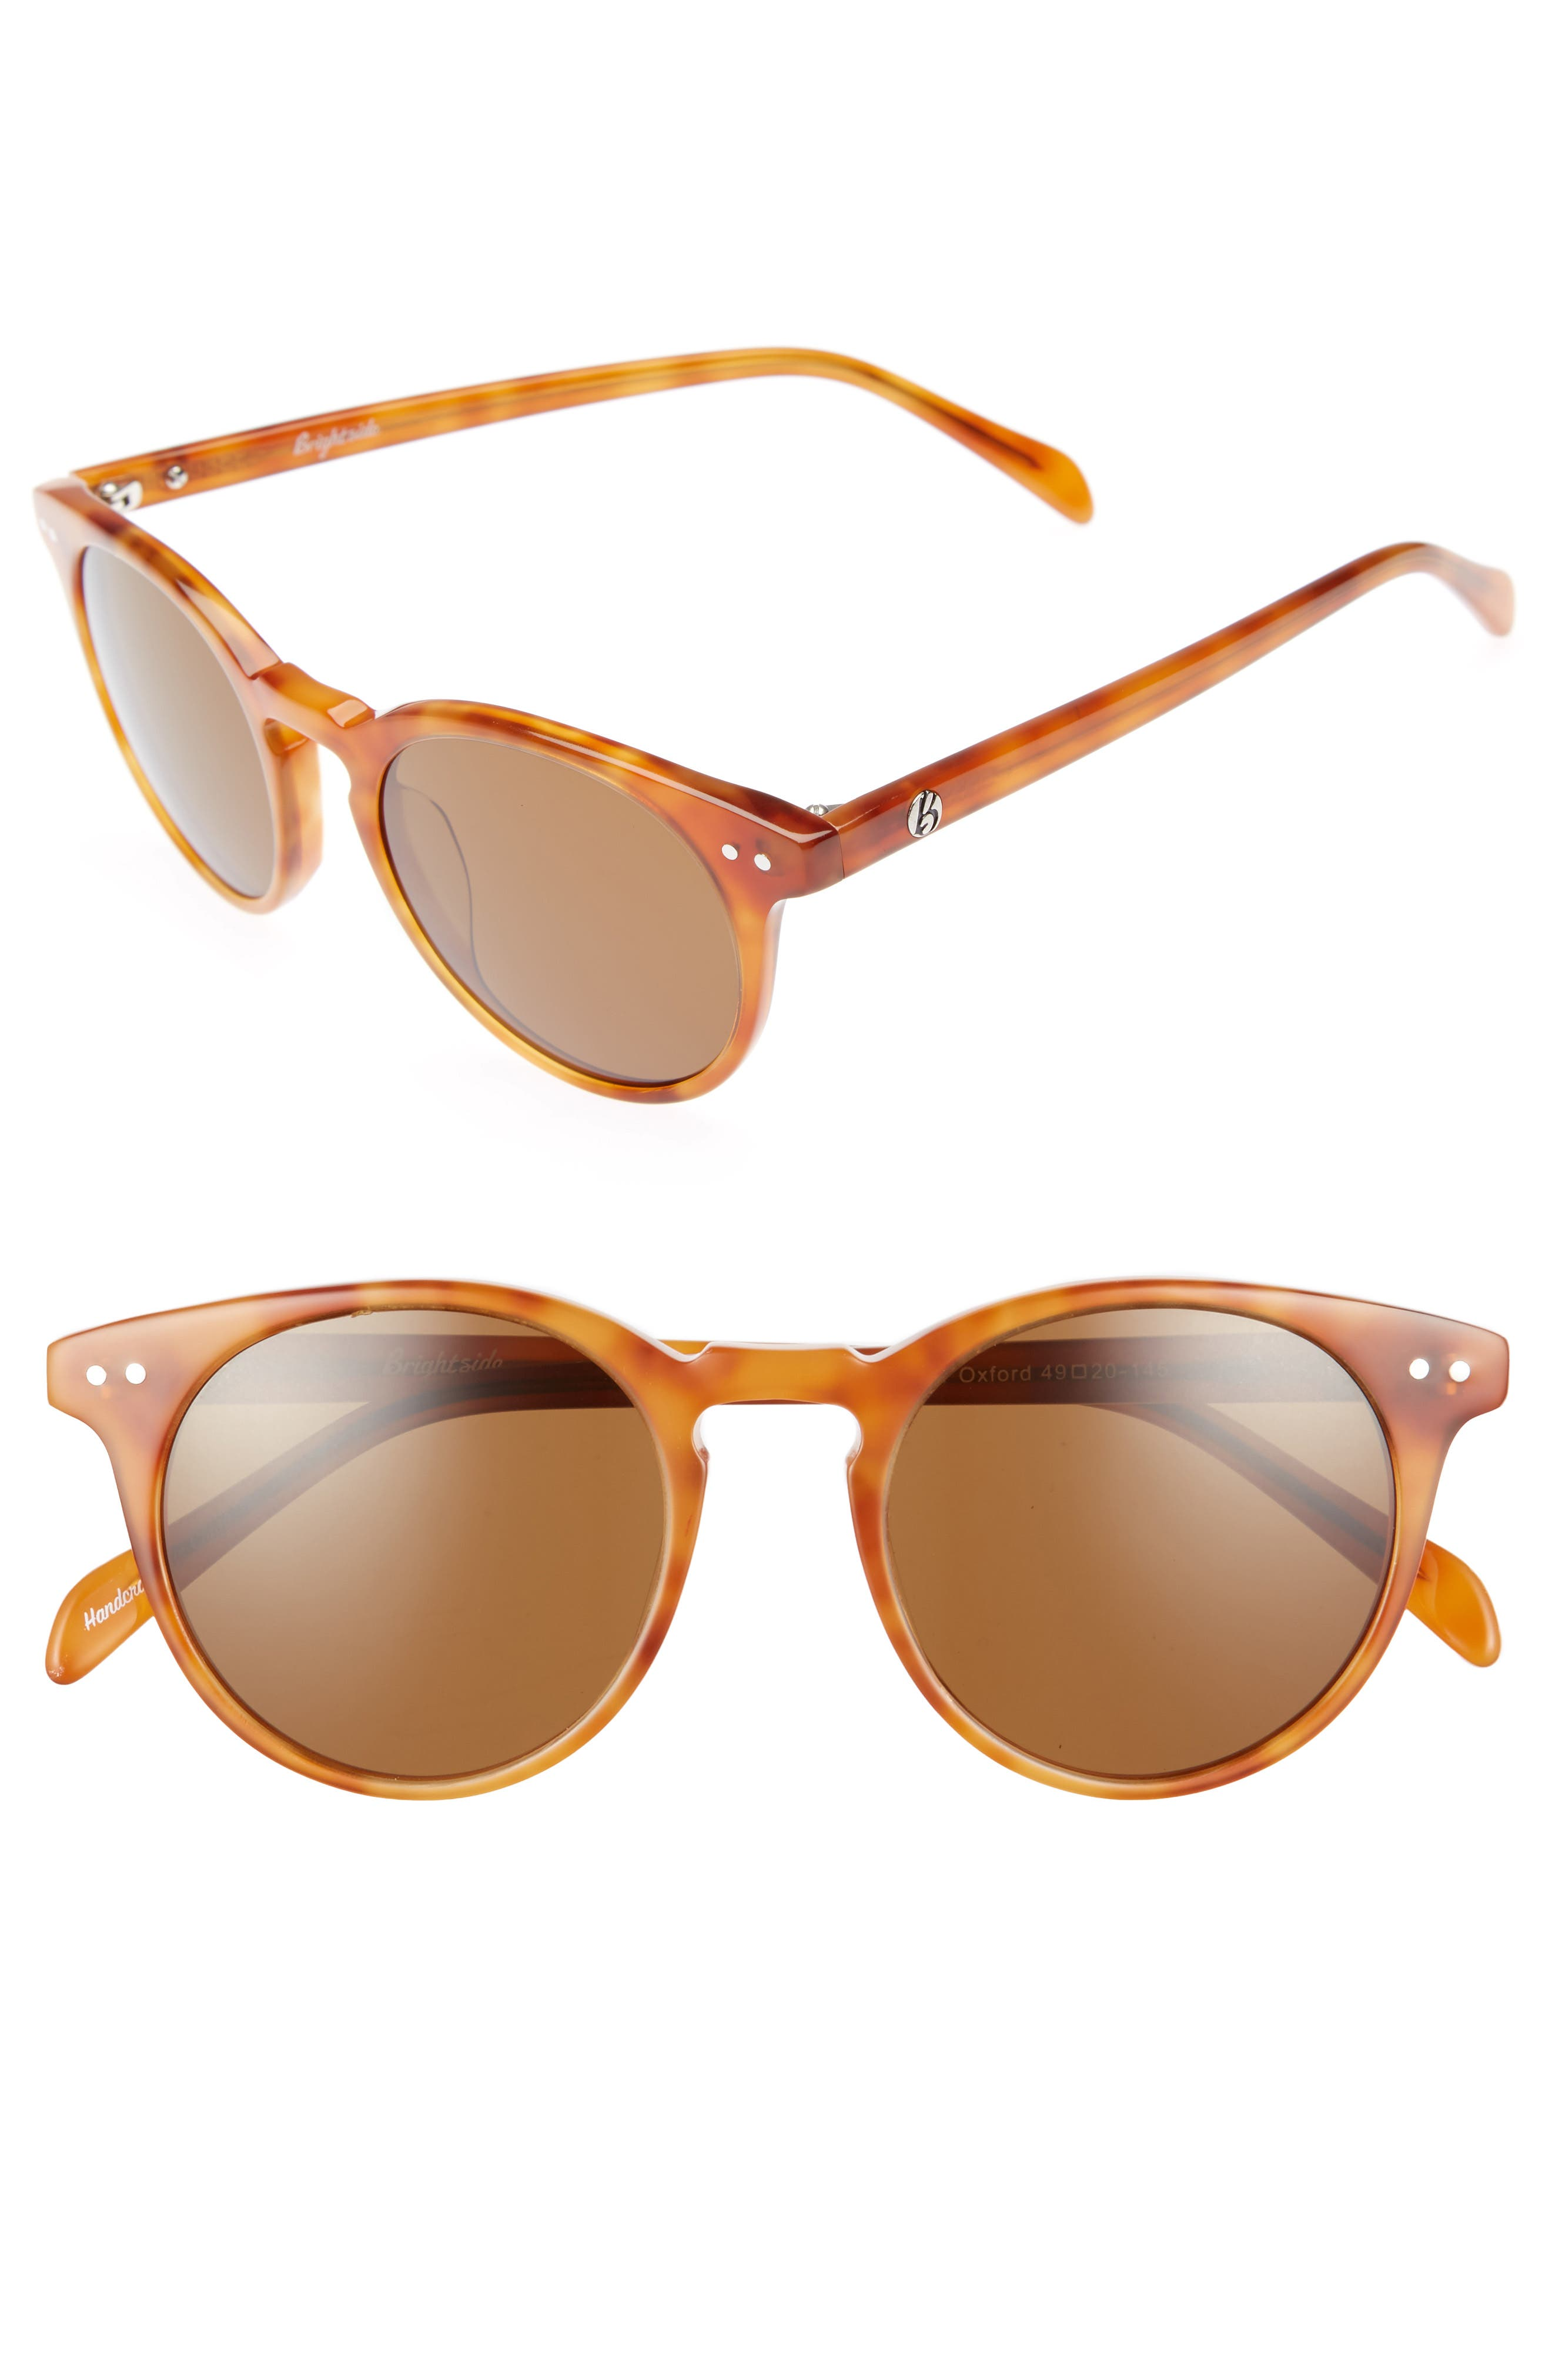 Oxford 49mm Sunglasses,                         Main,                         color, Light Brown/ Brown